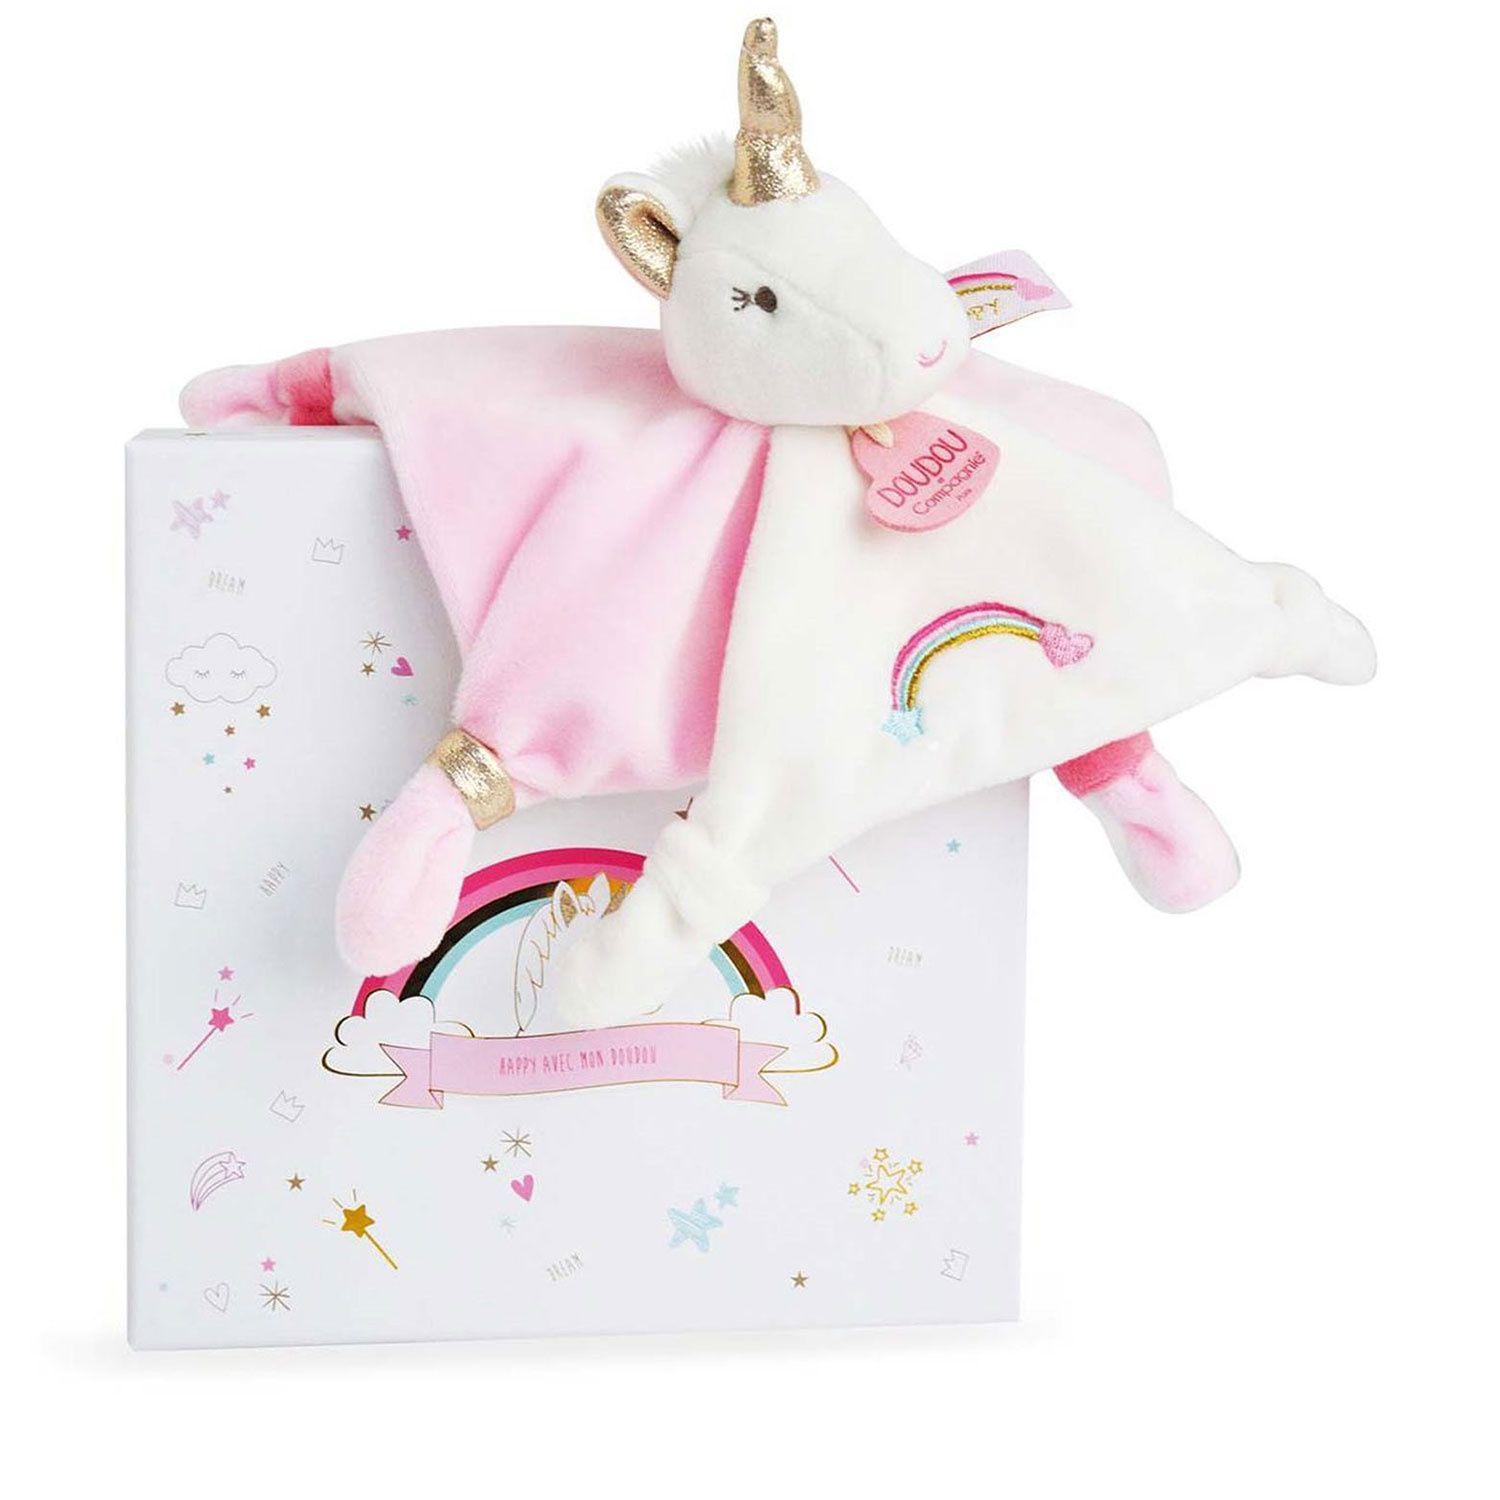 Picture of Doudou et Compagnie DC3312 baby accessory white